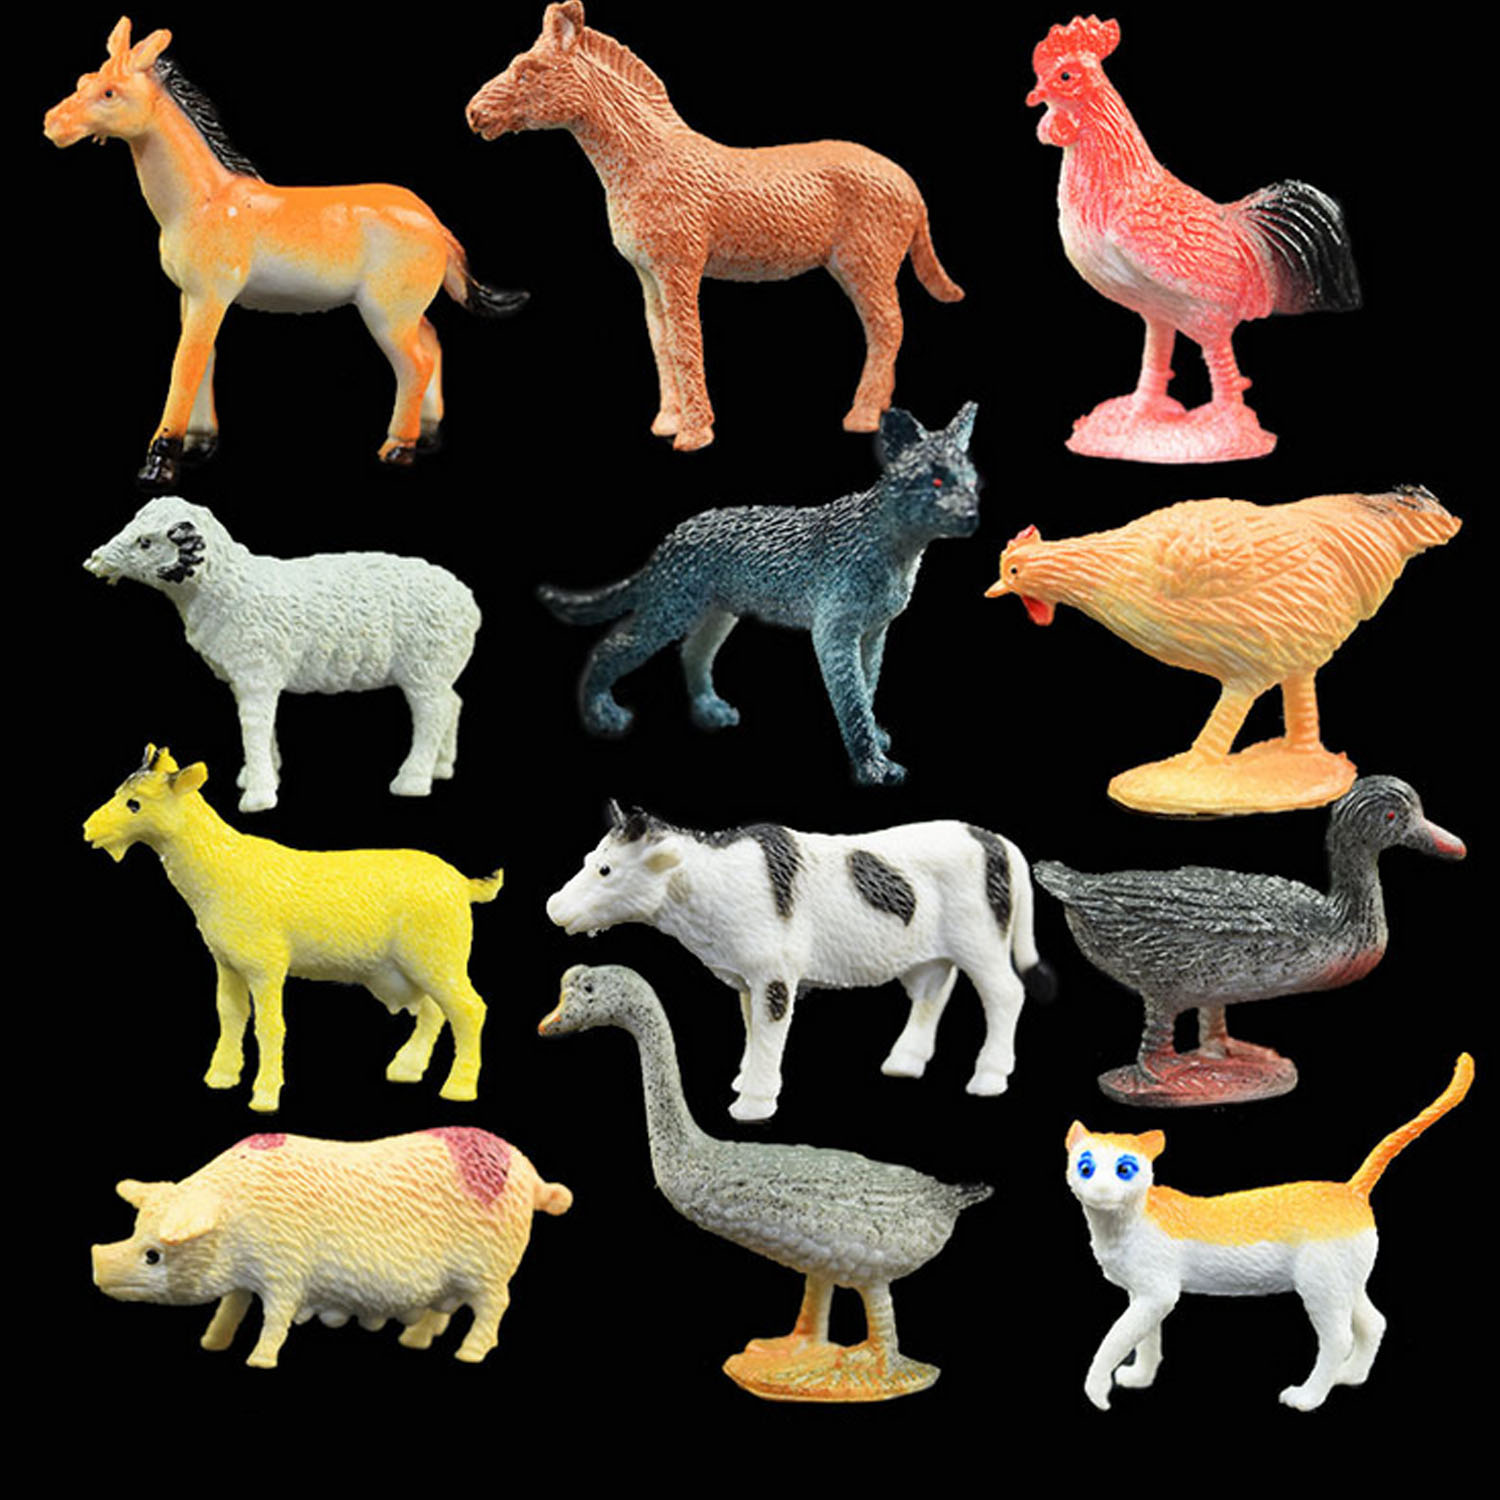 Kids Children 12PCS Mini Simulation Plastic Farm Animals Horse Chicken Sheep Cat Pig Duck Cow Models Educational Toys